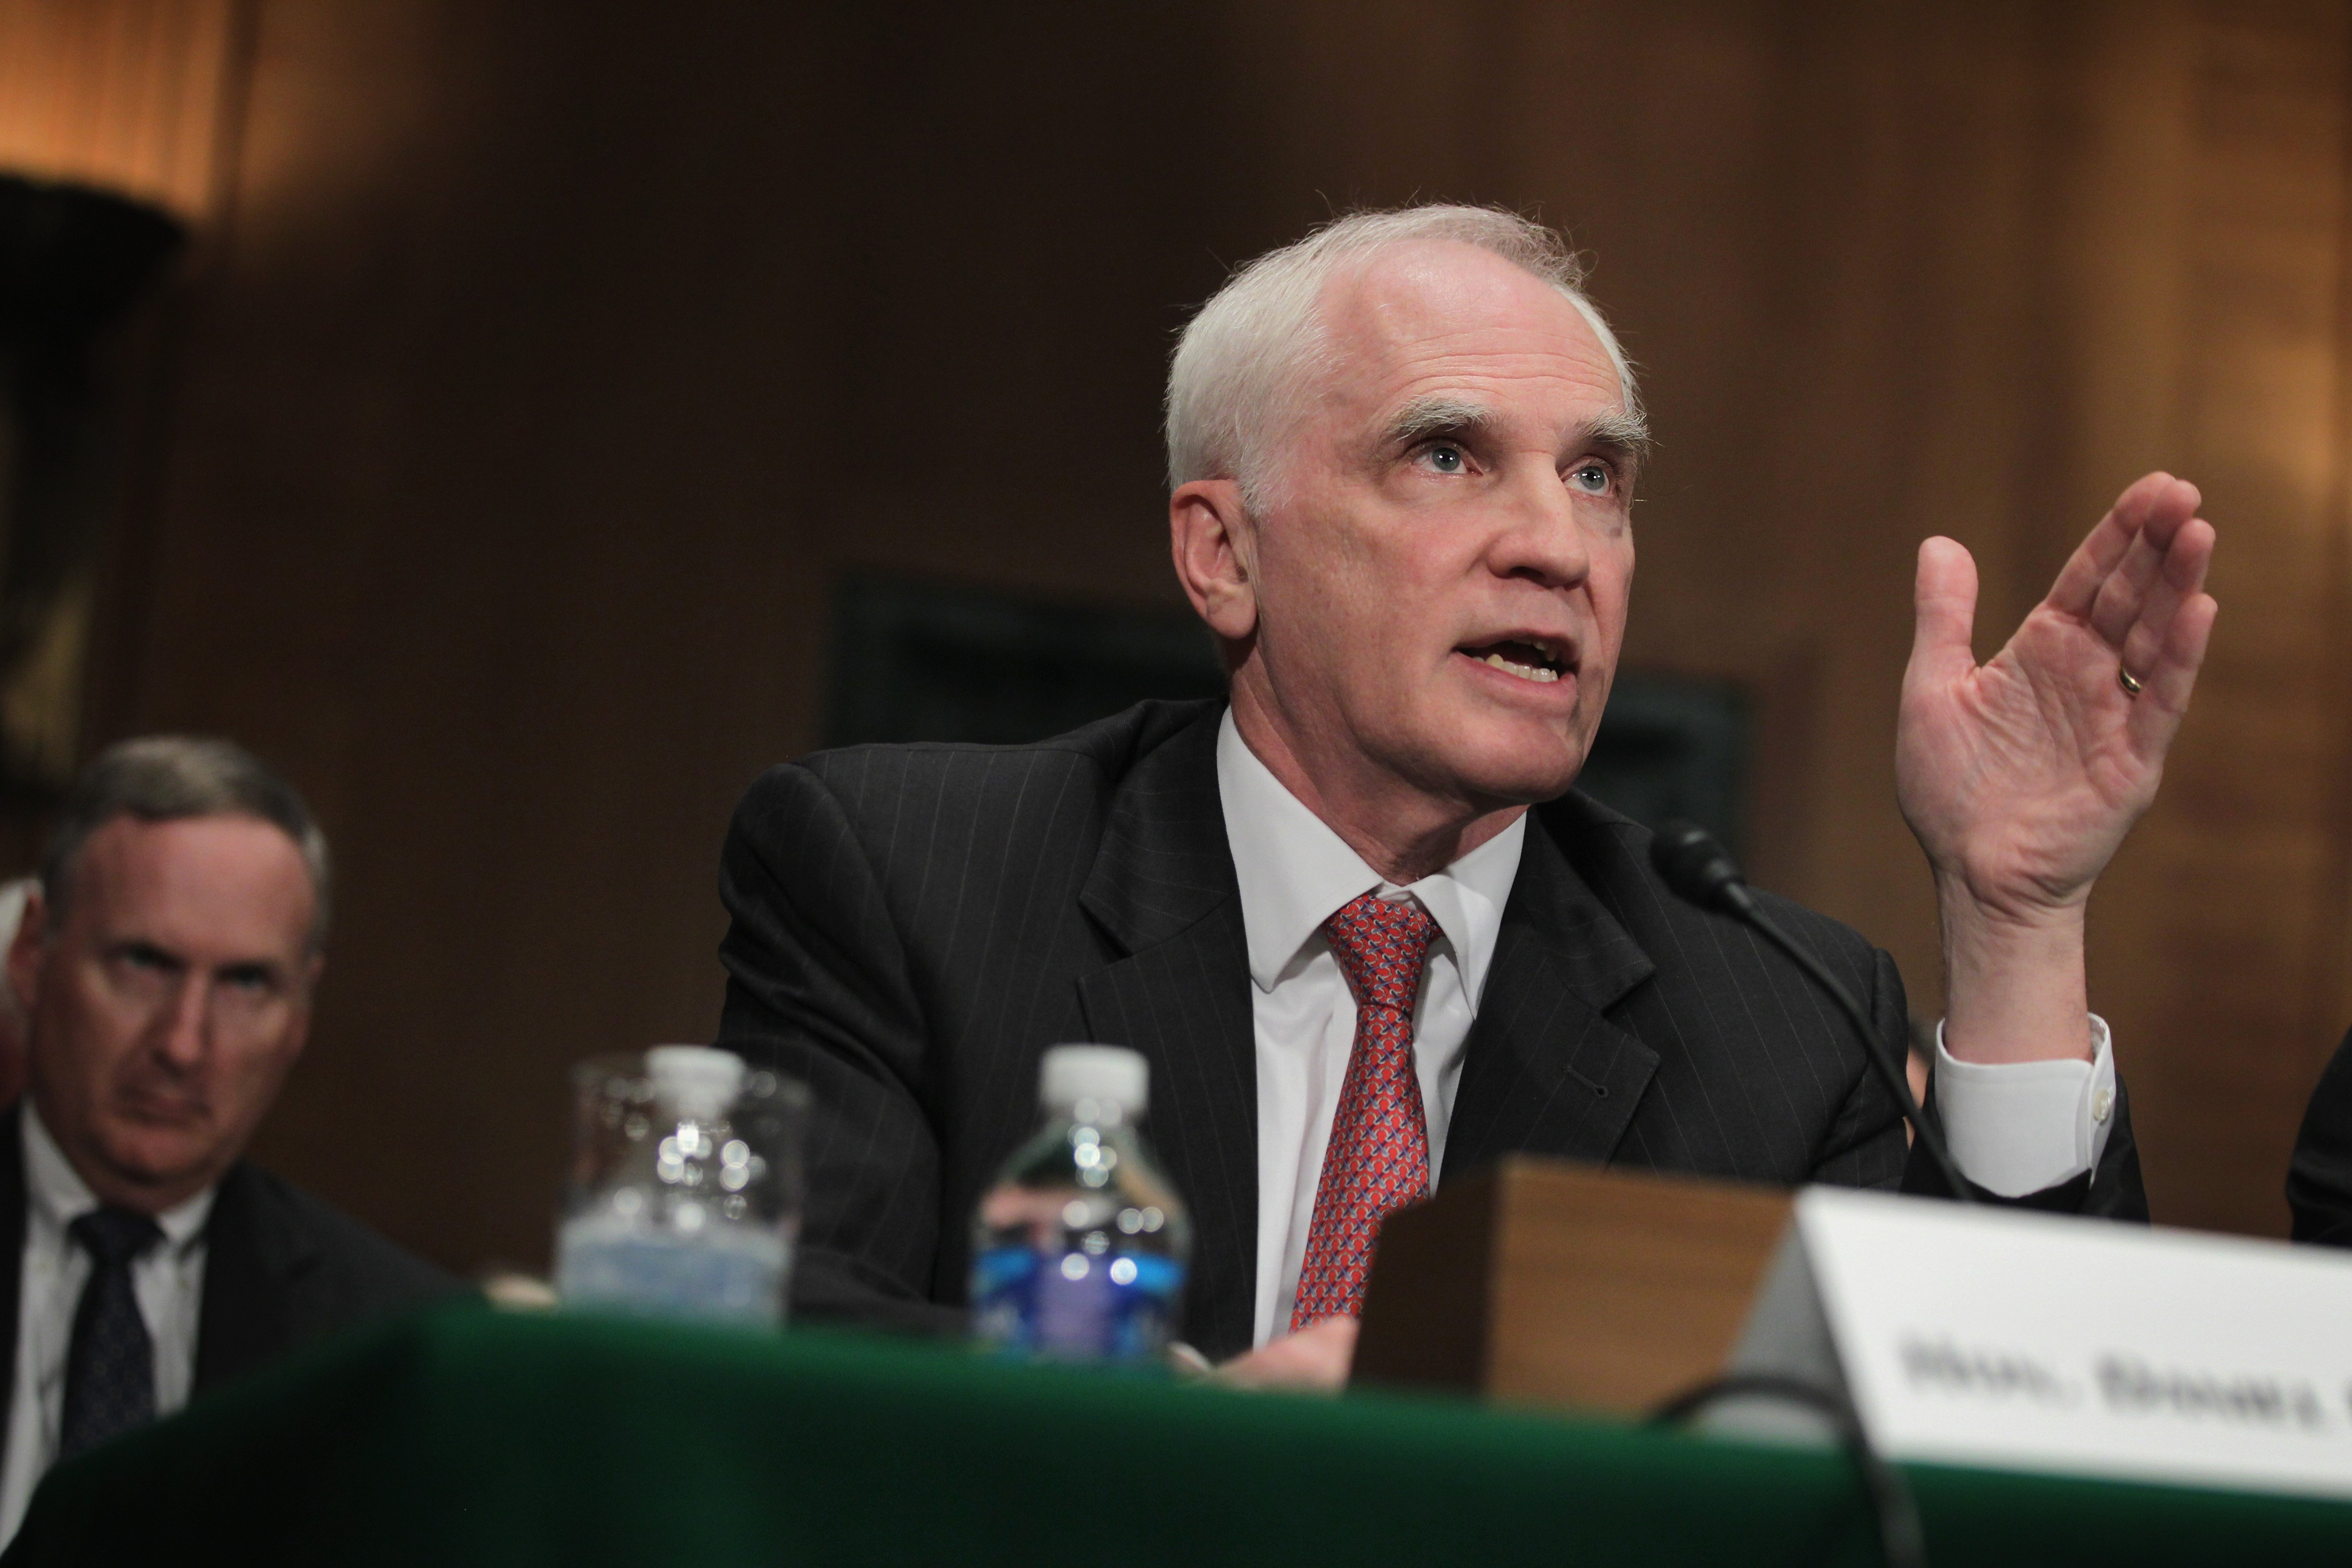 Federal Reserve Board of Governors member Daniel Tarullo testifies during a hearing before Senate Banking, Housing and Urban Affairs Committeeon Sept. 9, 2014 on Capitol Hill in Washington, DC.